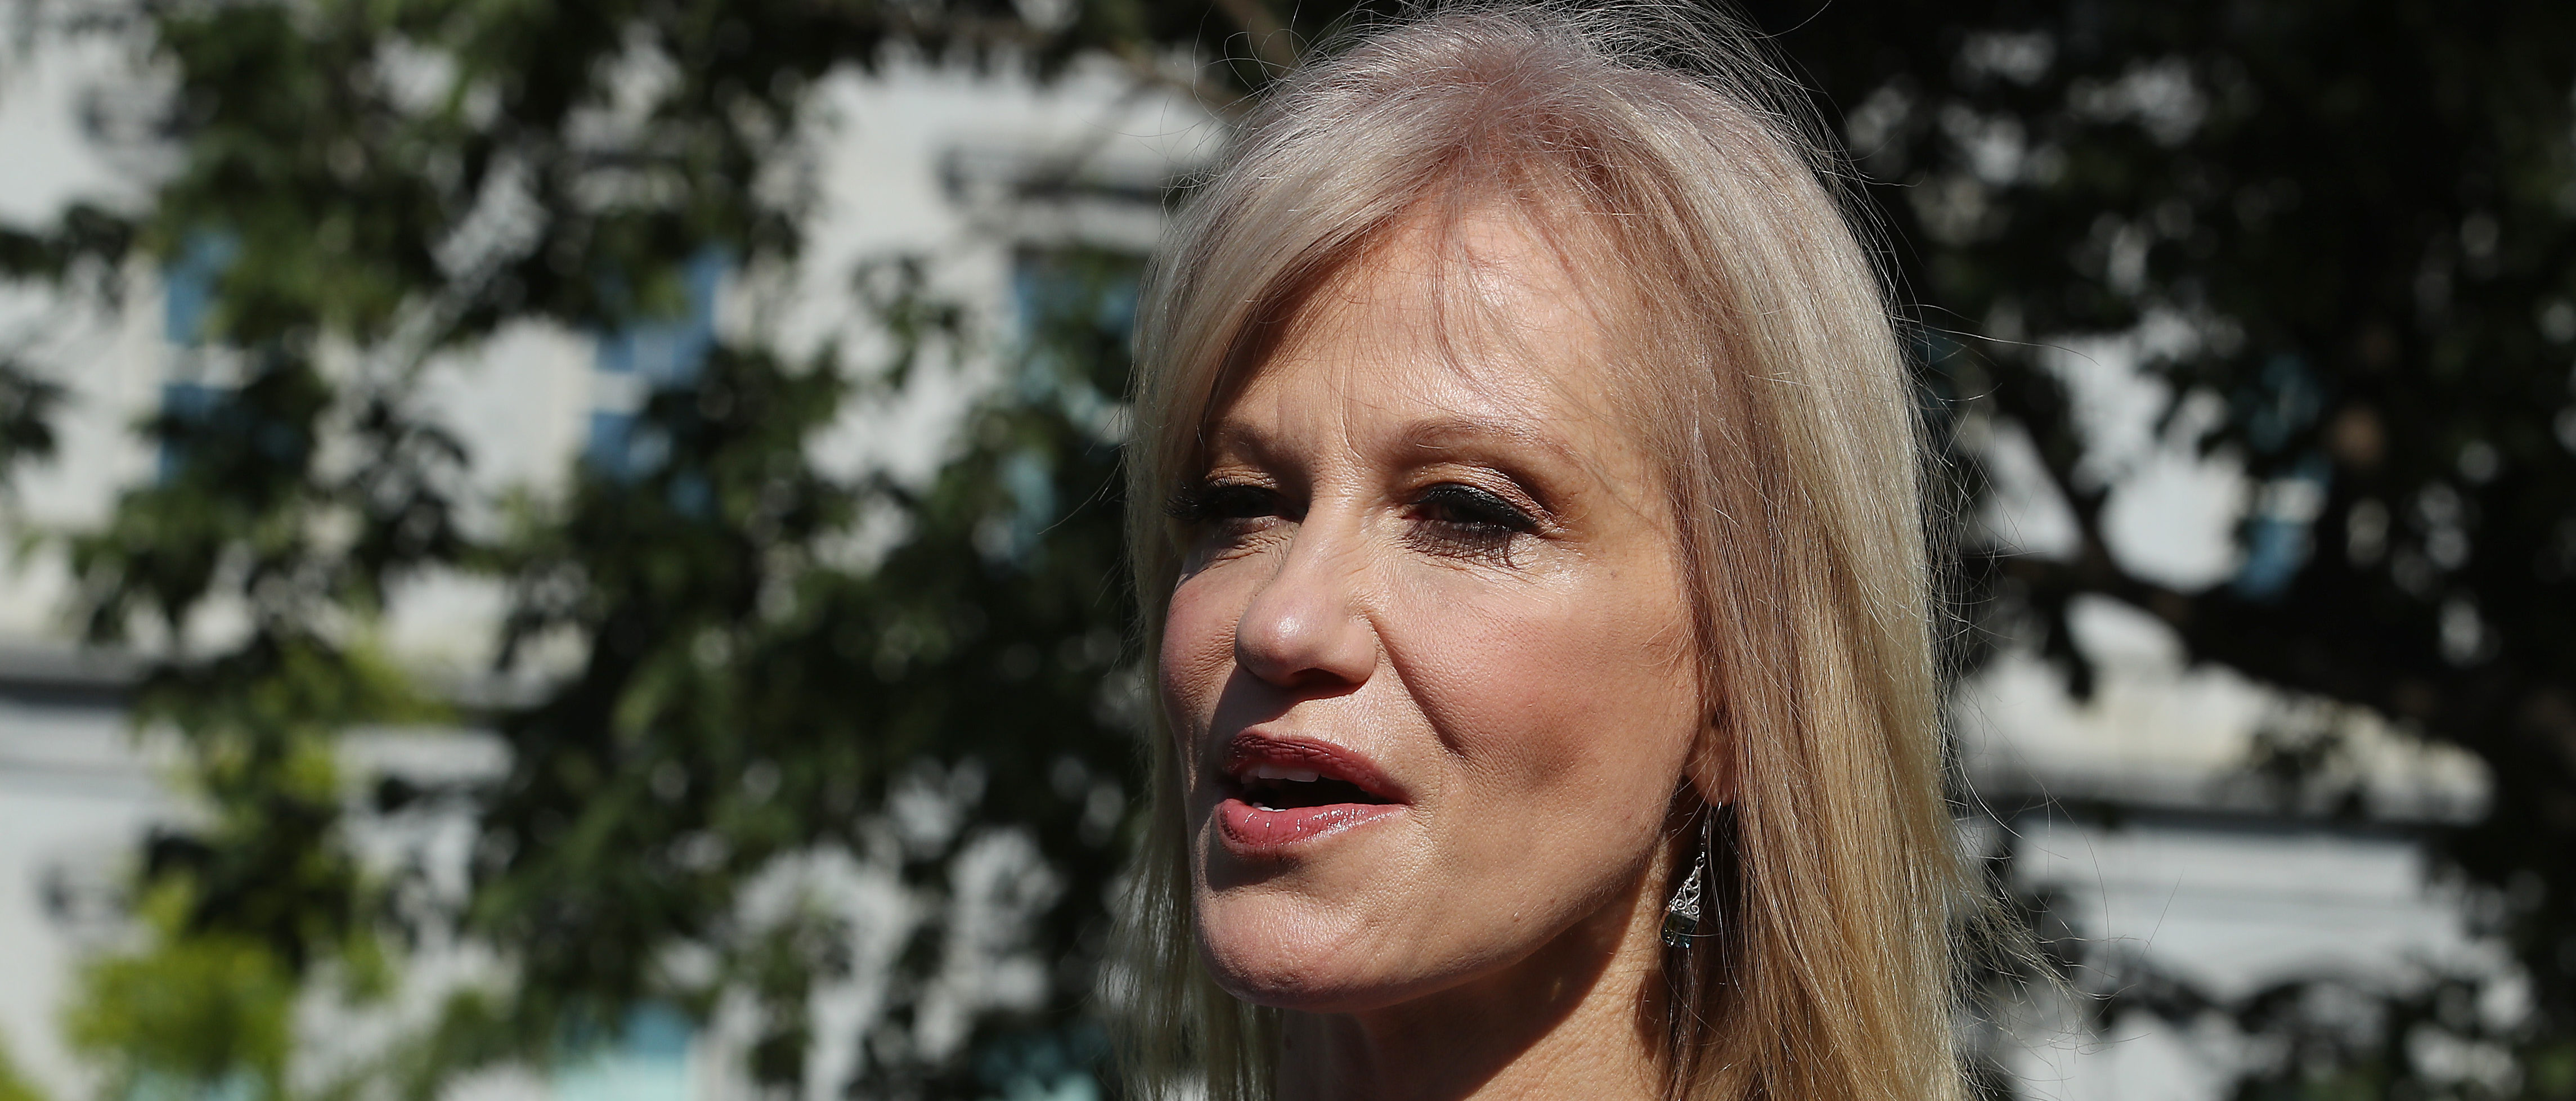 WASHINGTON, DC - JUNE 24: White House Counselor Kellyanne Conway speaks to the media after appearing on a morning talk show on the North Lawn of the White House, on June 24, 2019 in Washington, DC. Conway has been under fire for allegedly violating the Hatch Act. (Photo by Mark Wilson/Getty Images)